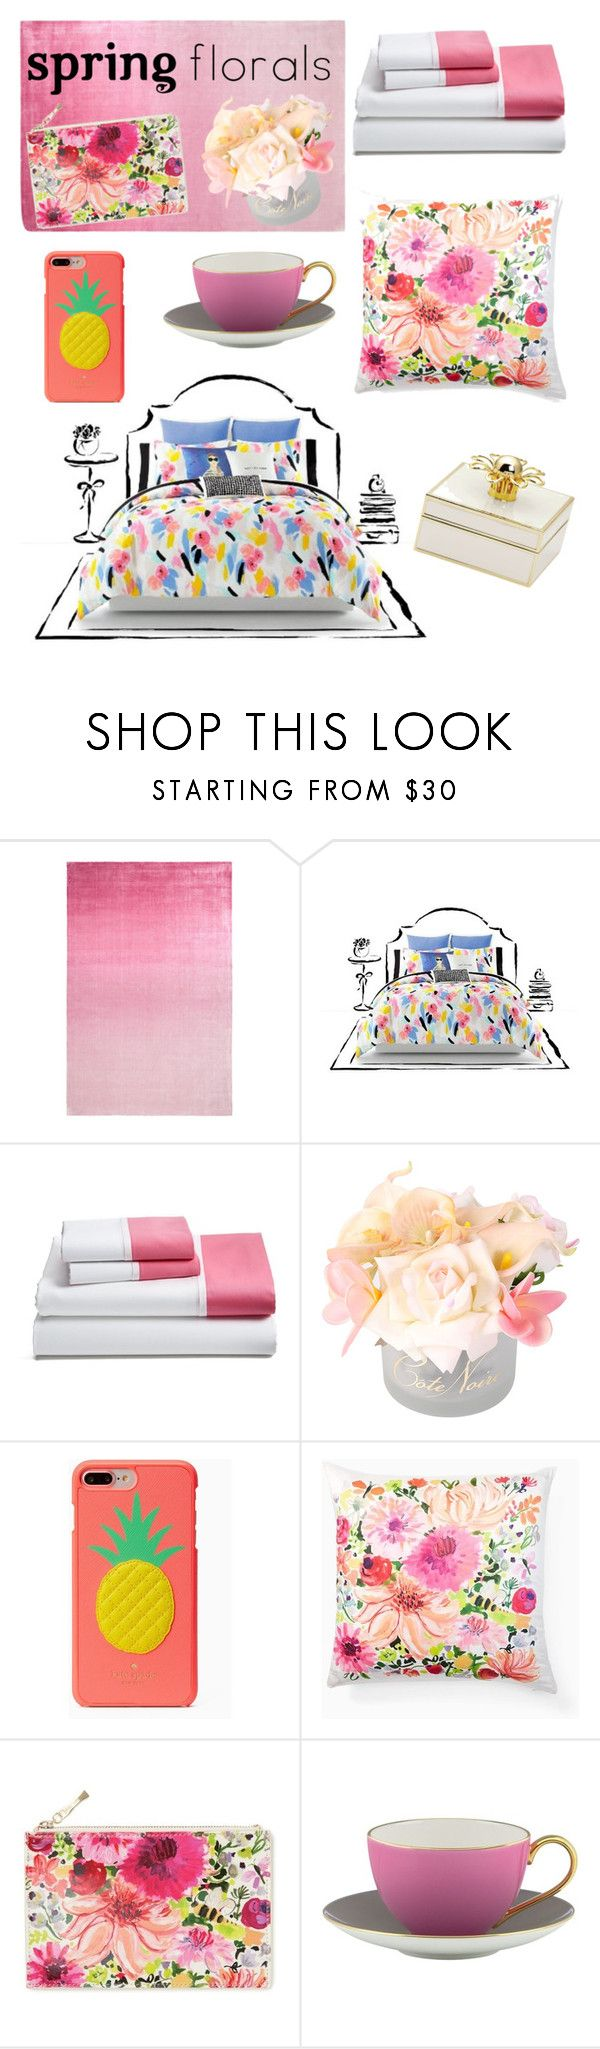 """Kate spade themed room ♠️"" by fashion0203 ❤ liked on Polyvore featuring interior, interiors, interior design, home, home decor, interior decorating, Designers Guild, Kate Spade and springflorals"